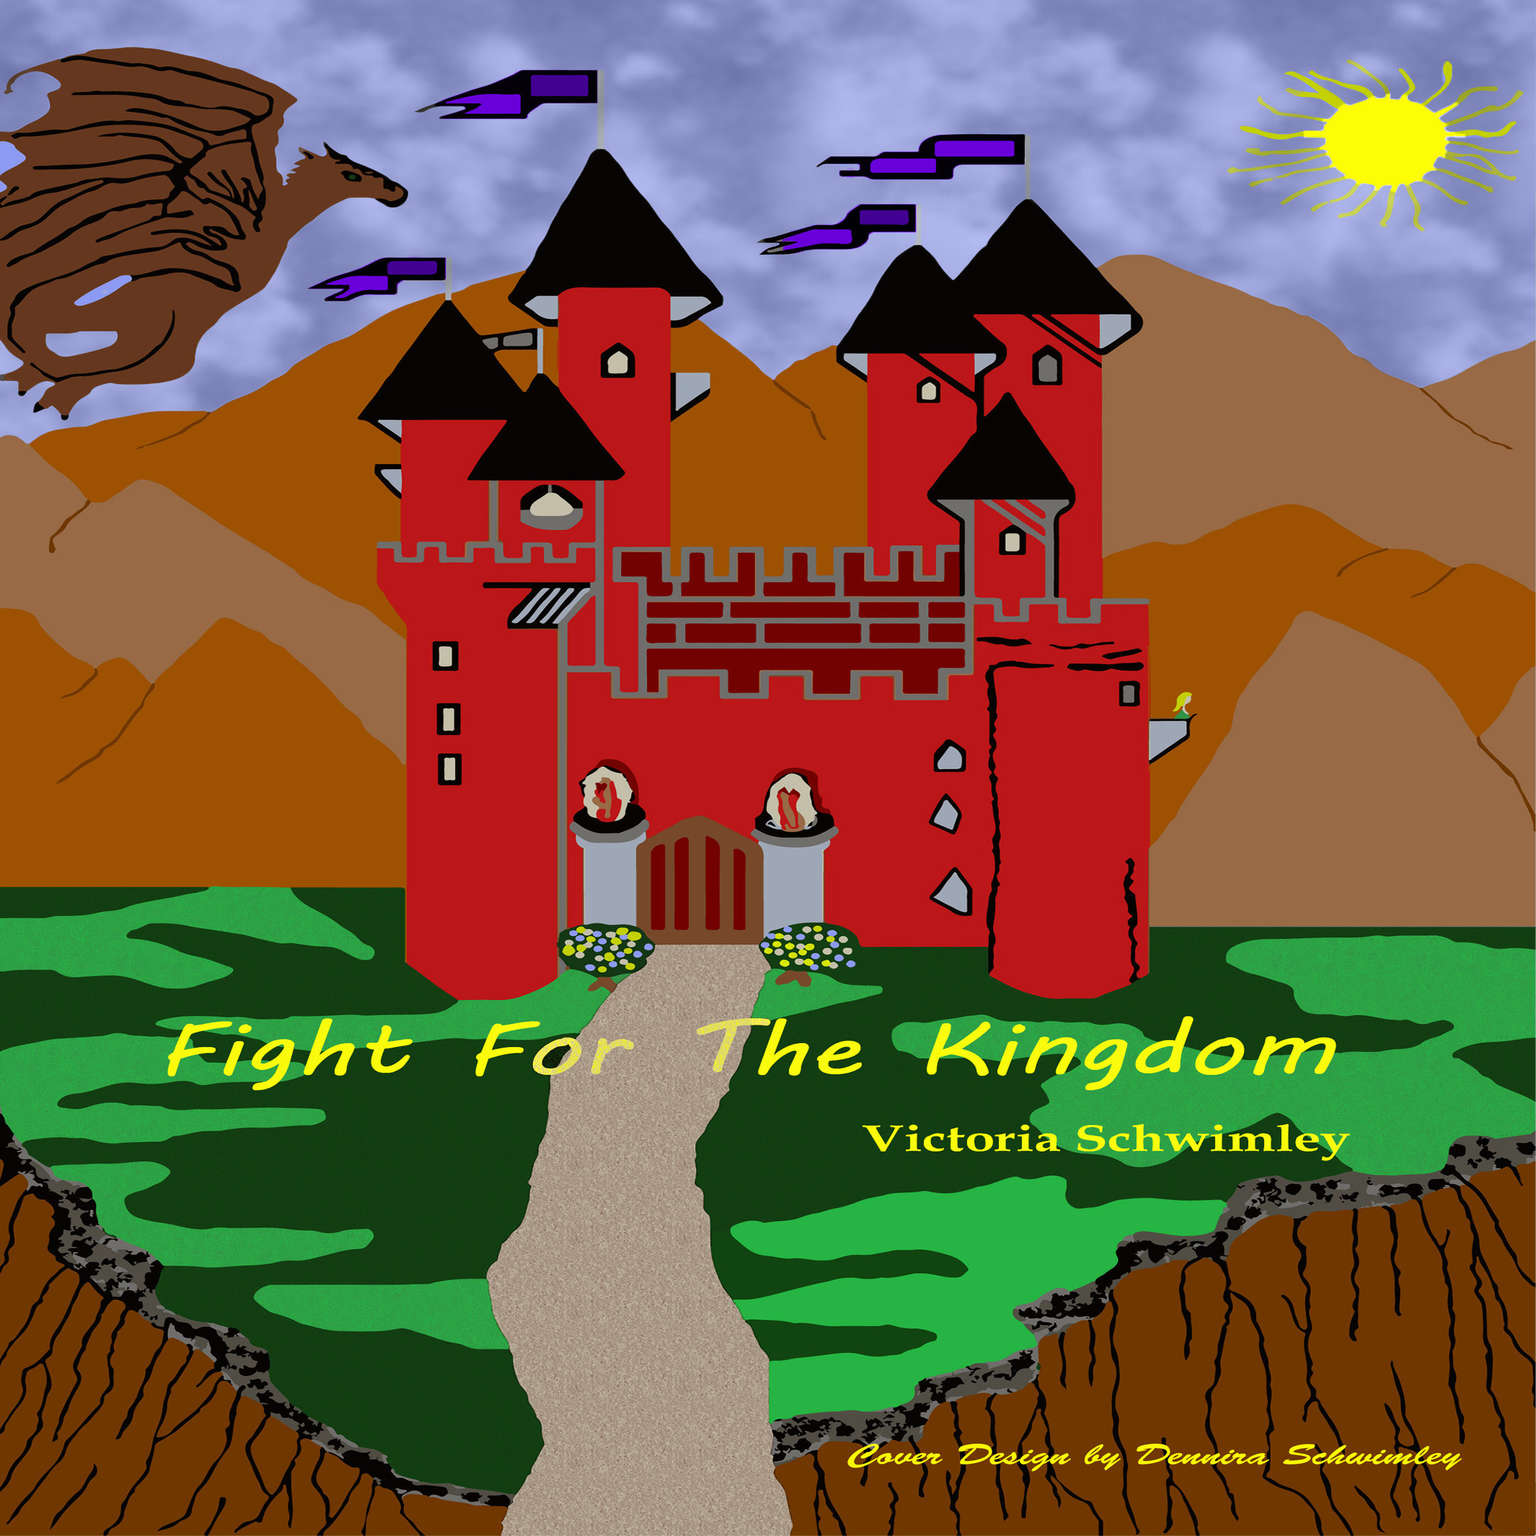 Fight For The Kingdom Audiobook, by Victoria Schwimley